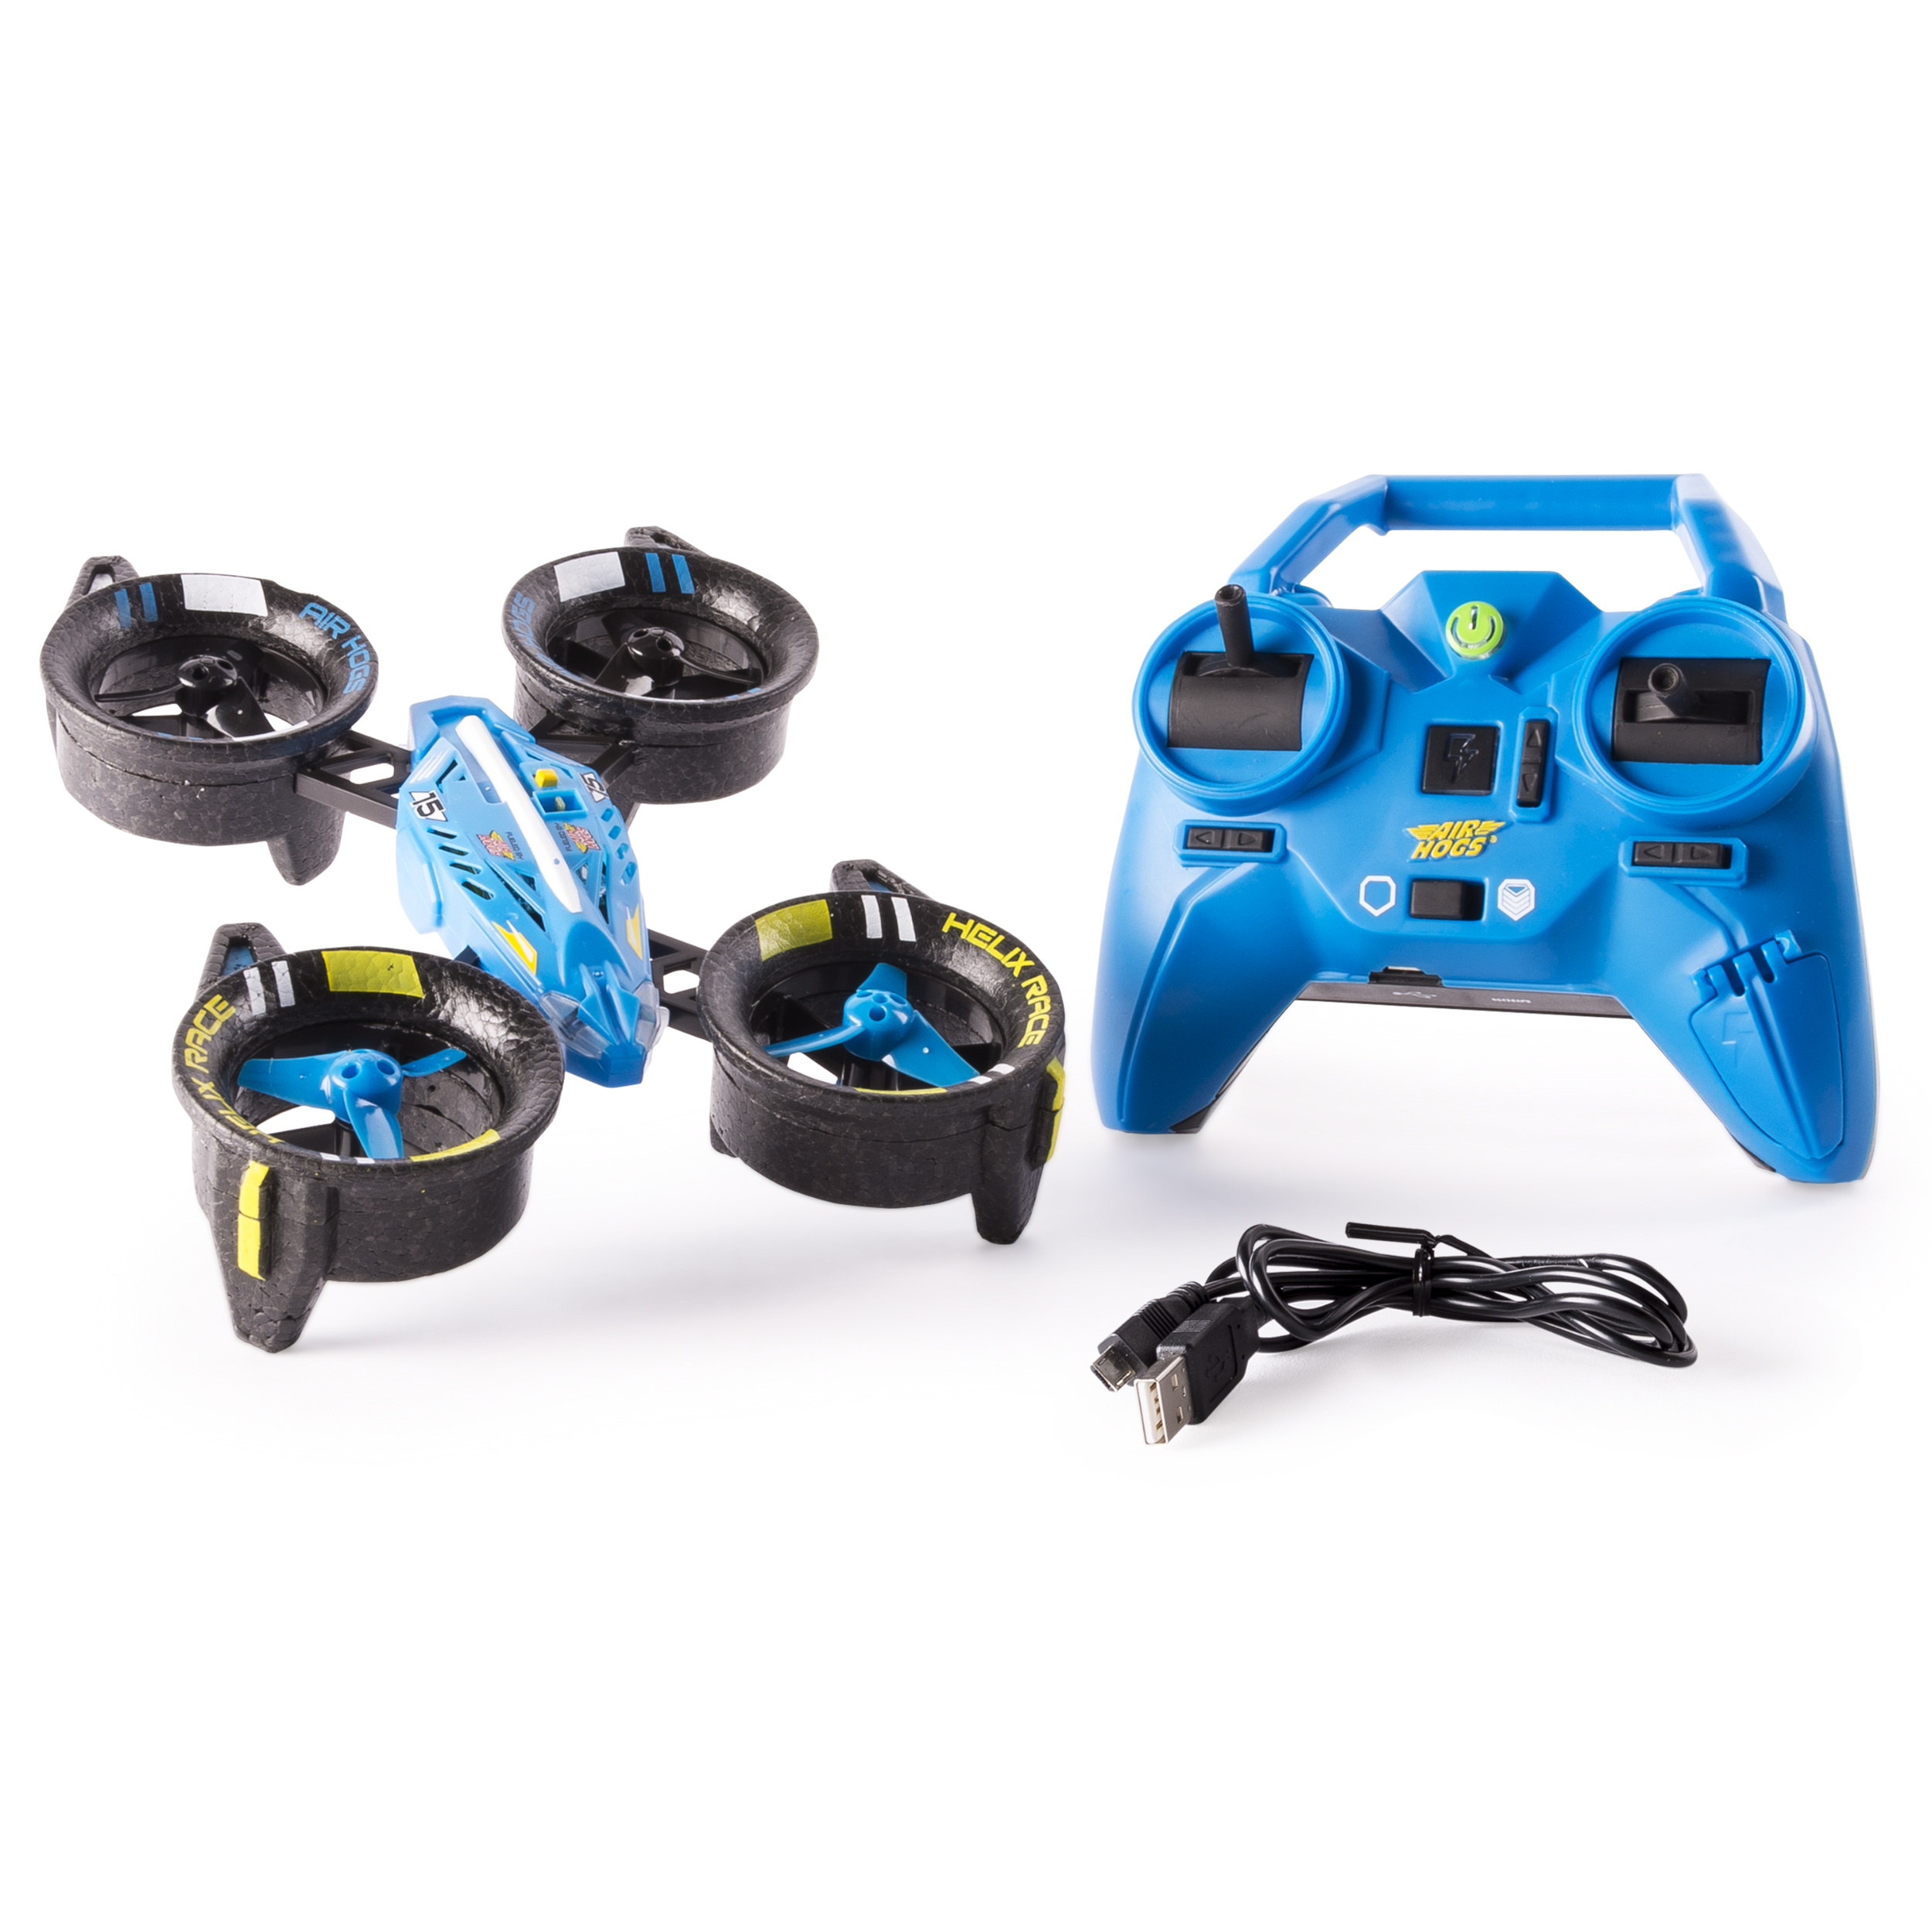 Air Hogs, Helix Race Drone, 2.4 GHZ, Blue RC Vehicle